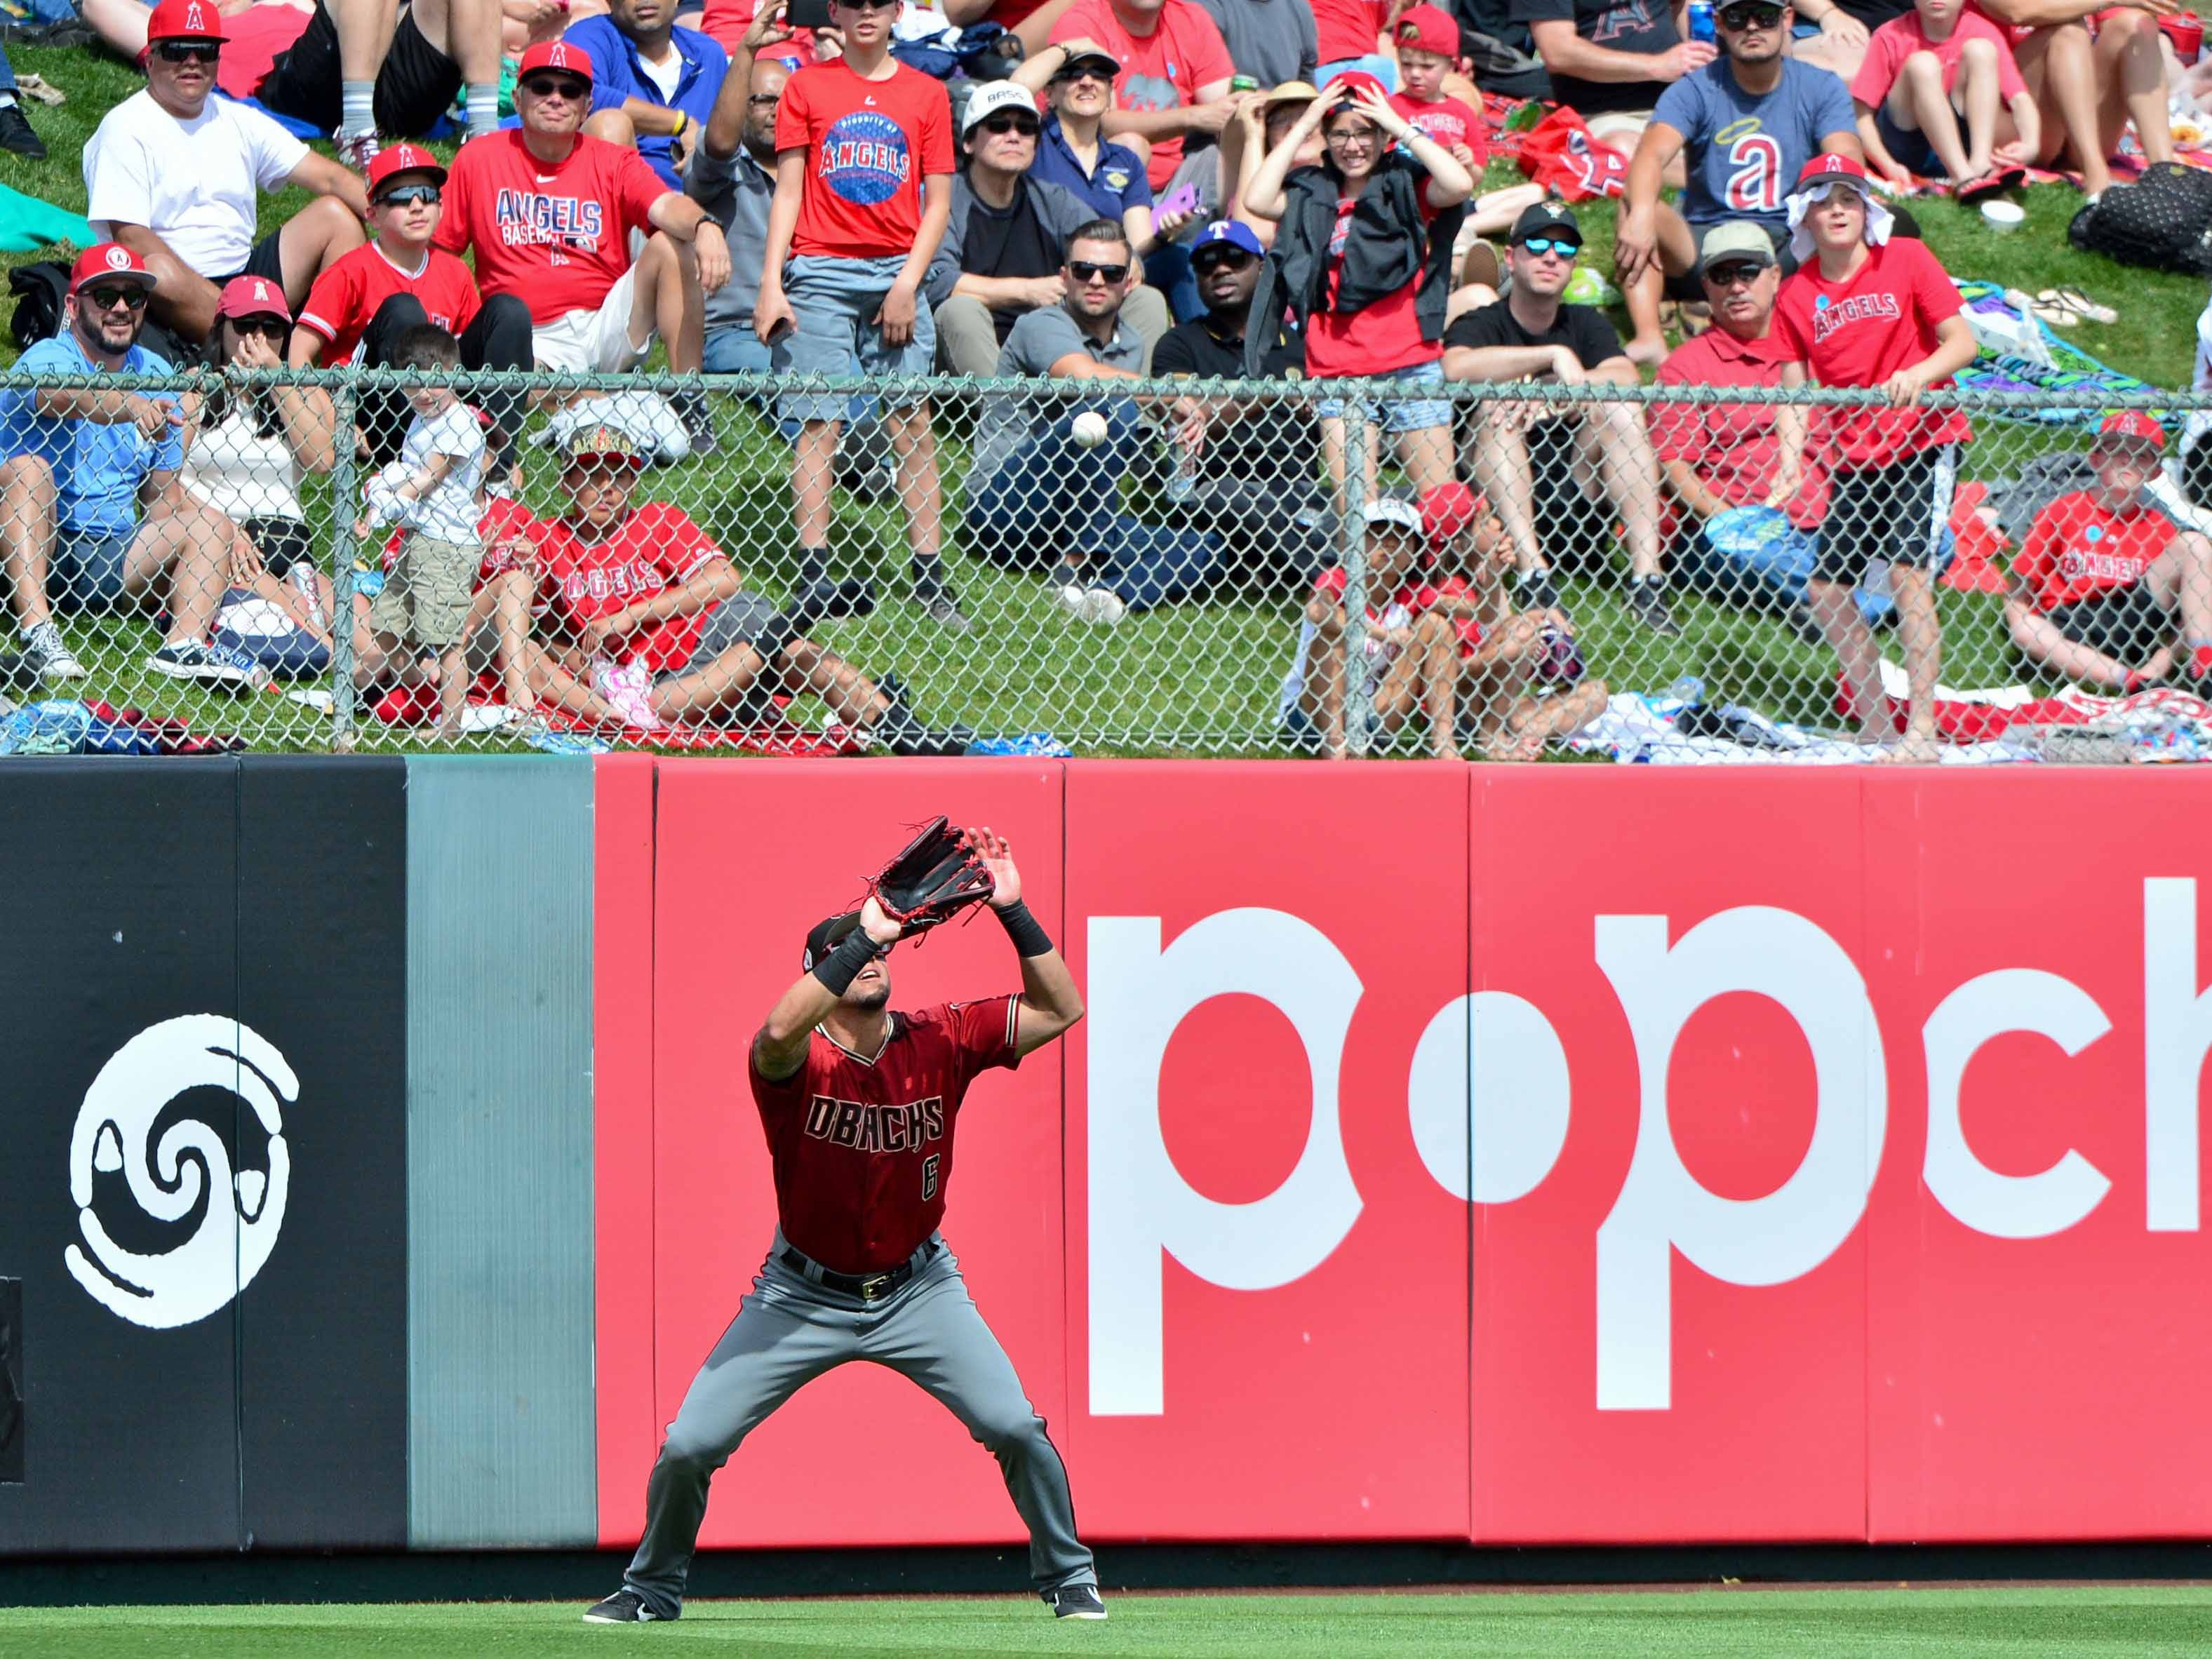 Mar 15, 2019; Tempe, AZ, USA; Arizona Diamondbacks catcher Matt Jones (6) catches a fly ball to end the second inning against the Los Angeles Angels at Tempe Diablo Stadium. Mandatory Credit: Matt Kartozian-USA TODAY Sports